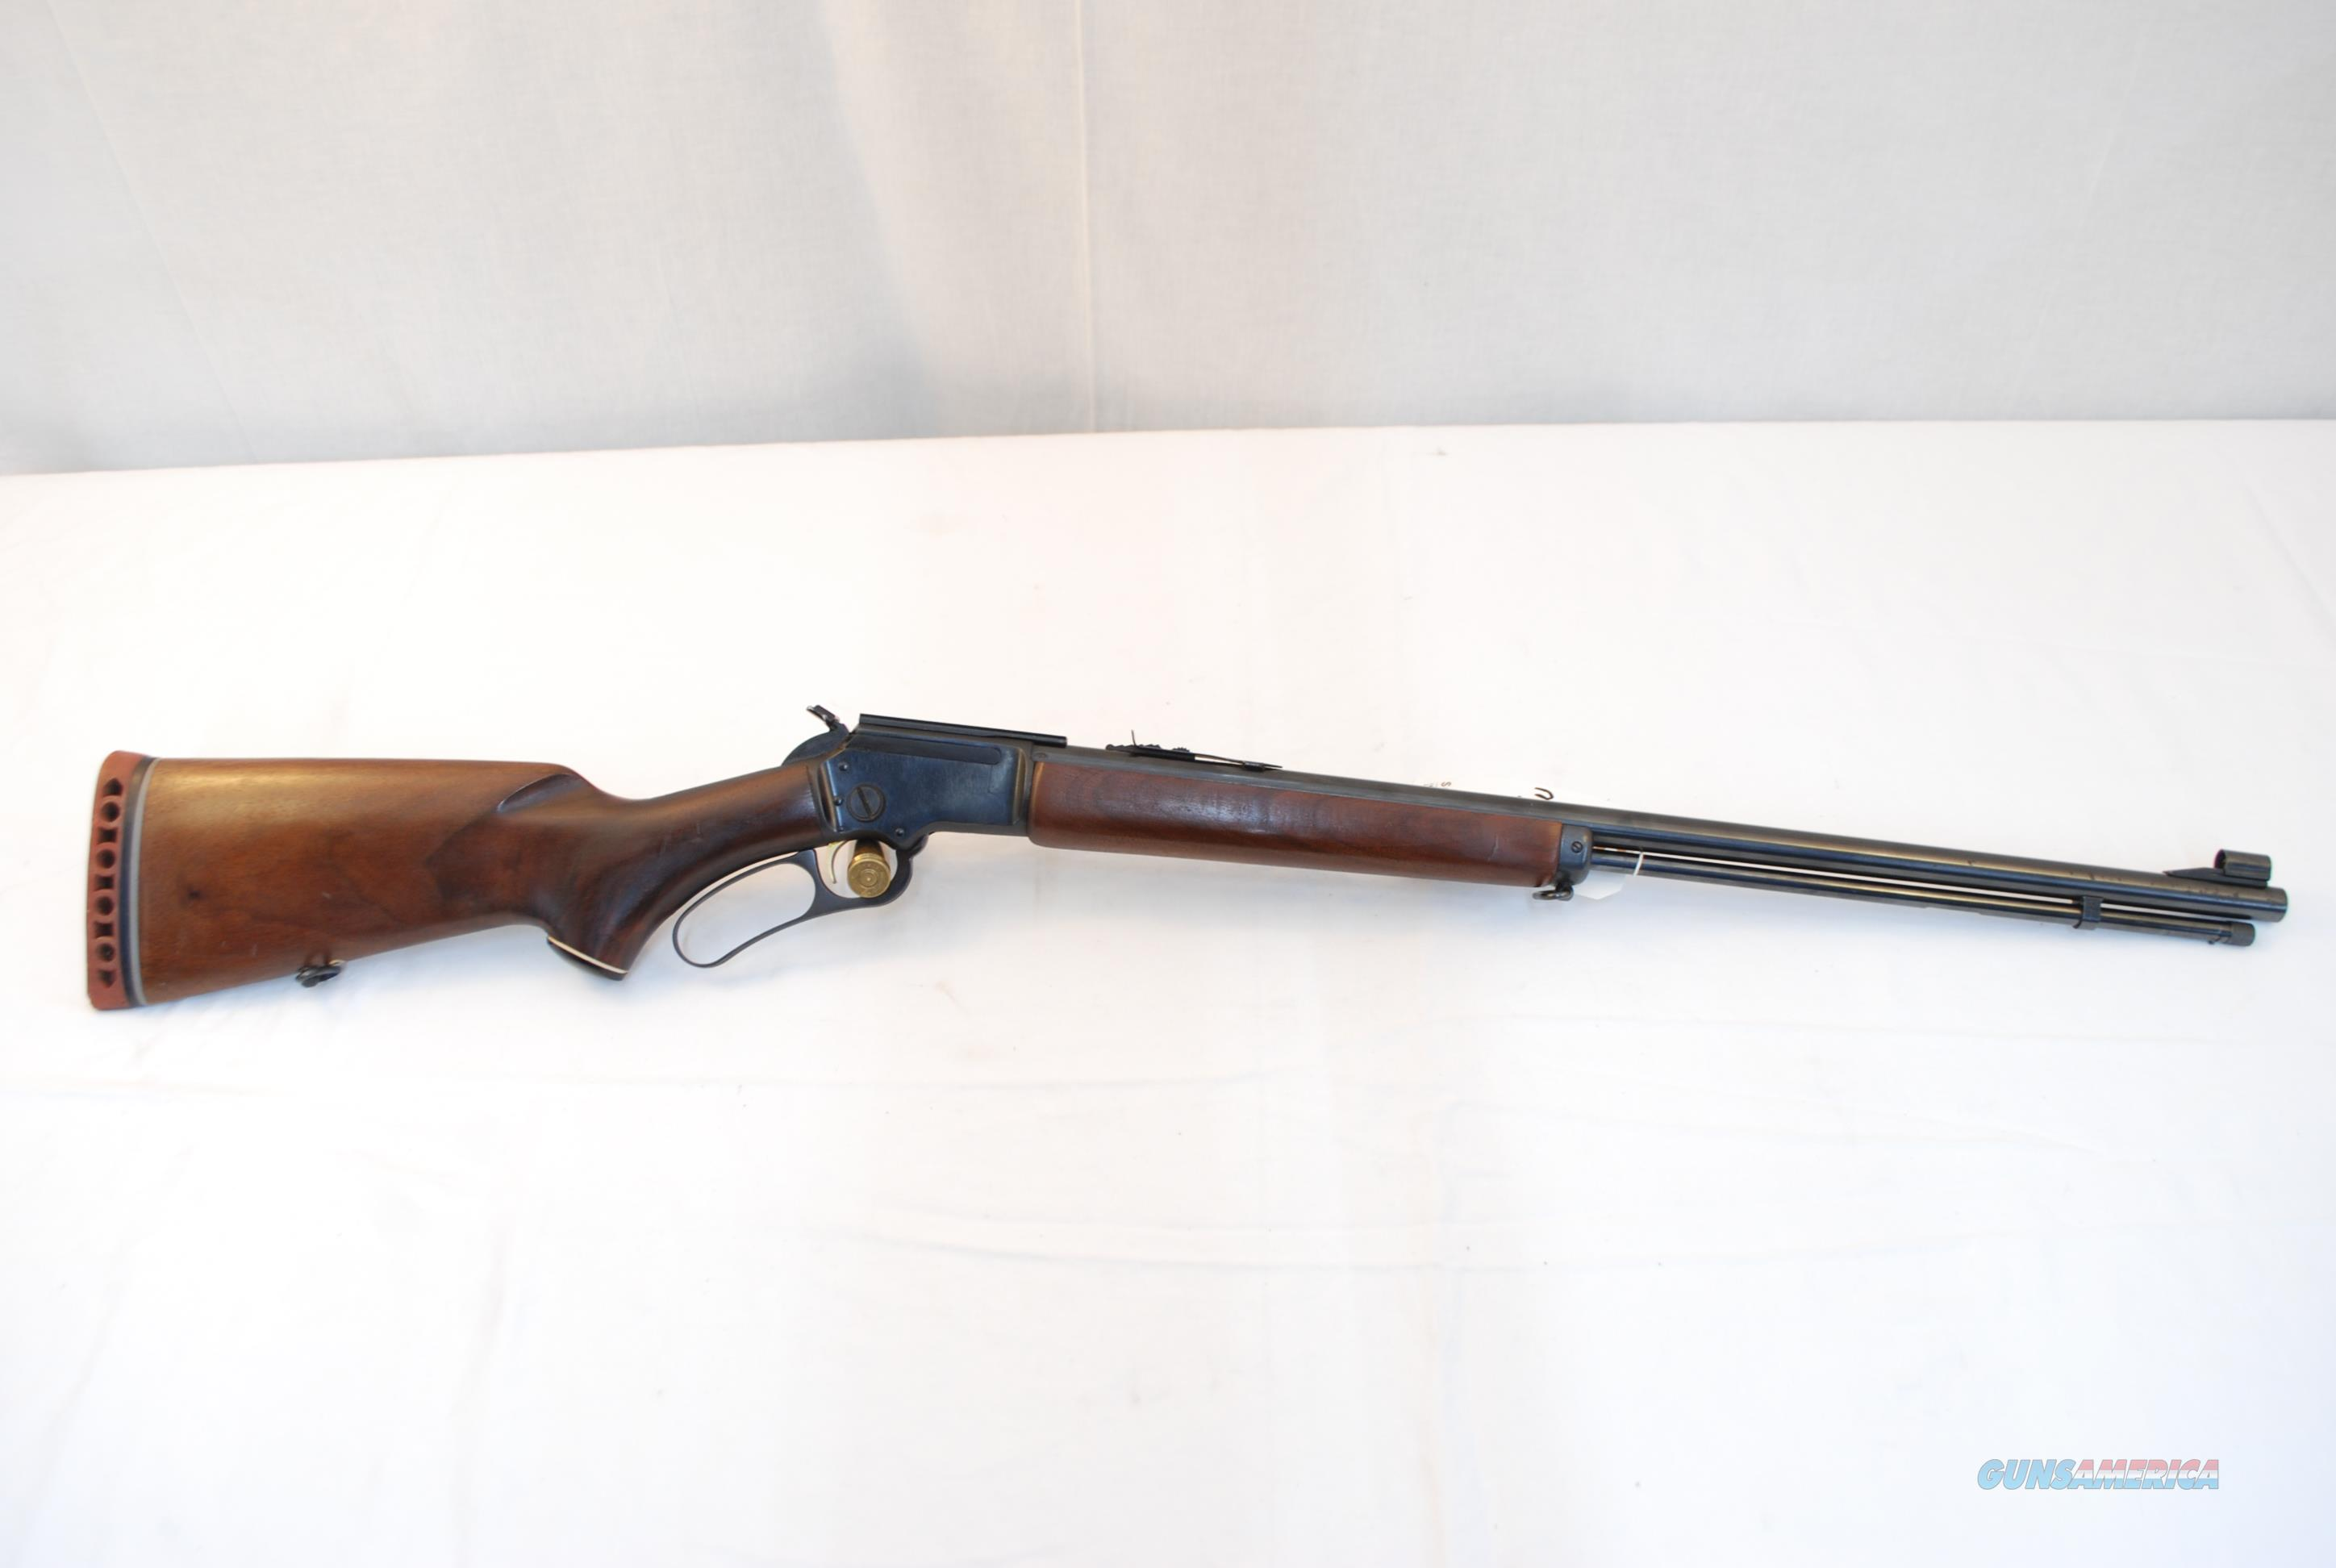 Marlin 39A .22LR  Guns > Rifles > Marlin Rifles > Modern > Lever Action